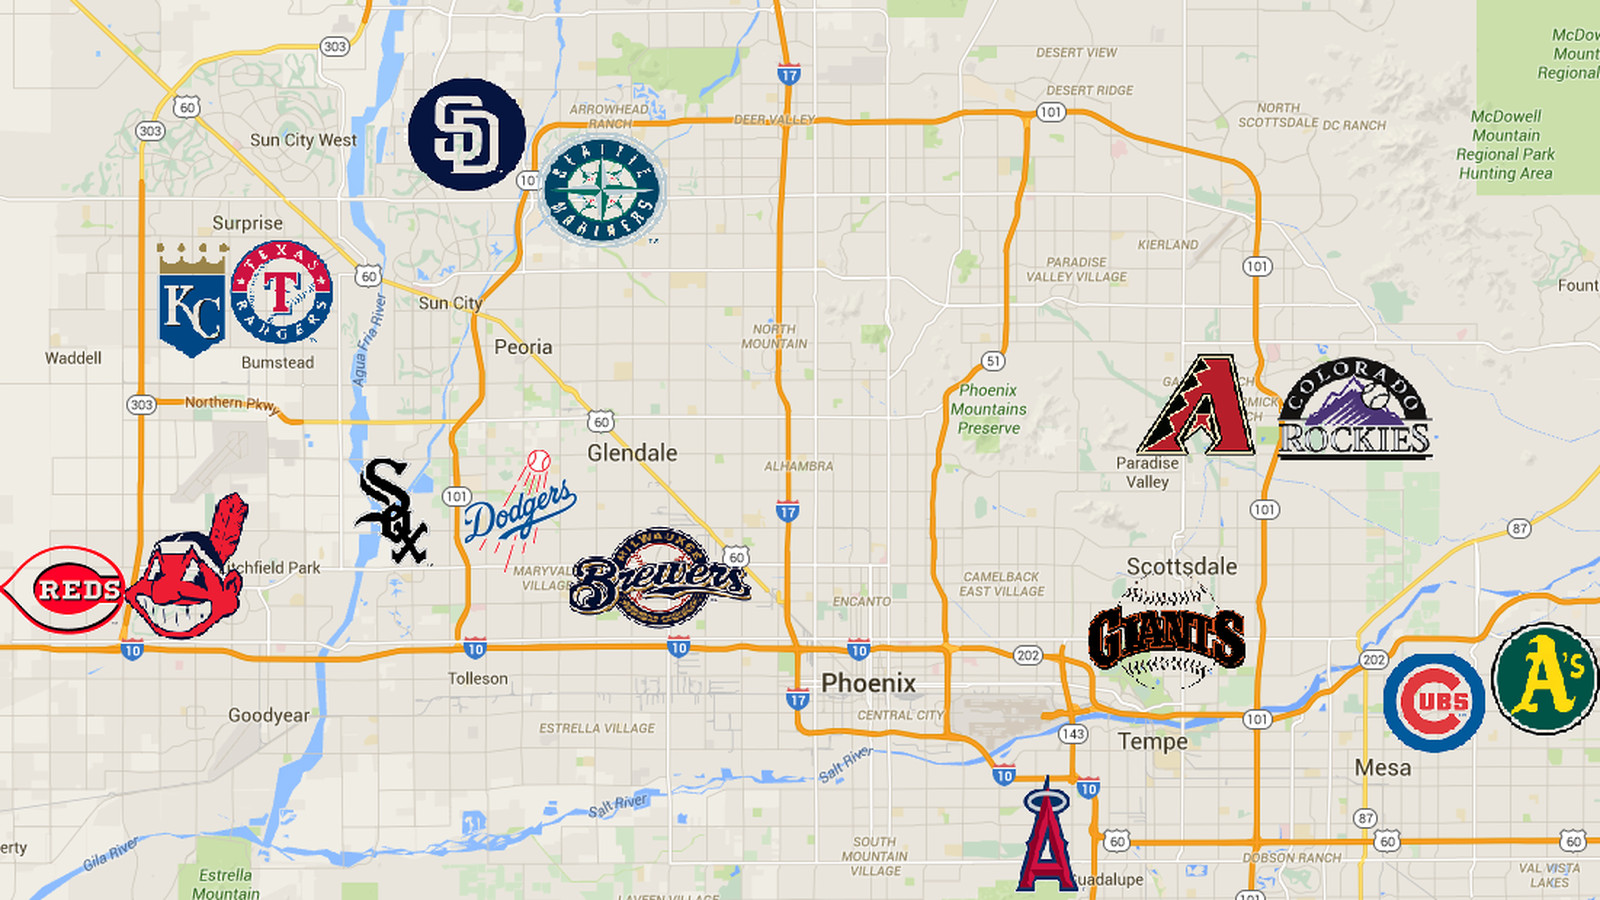 A handy map of the Cactus League stadiums Halos Heaven